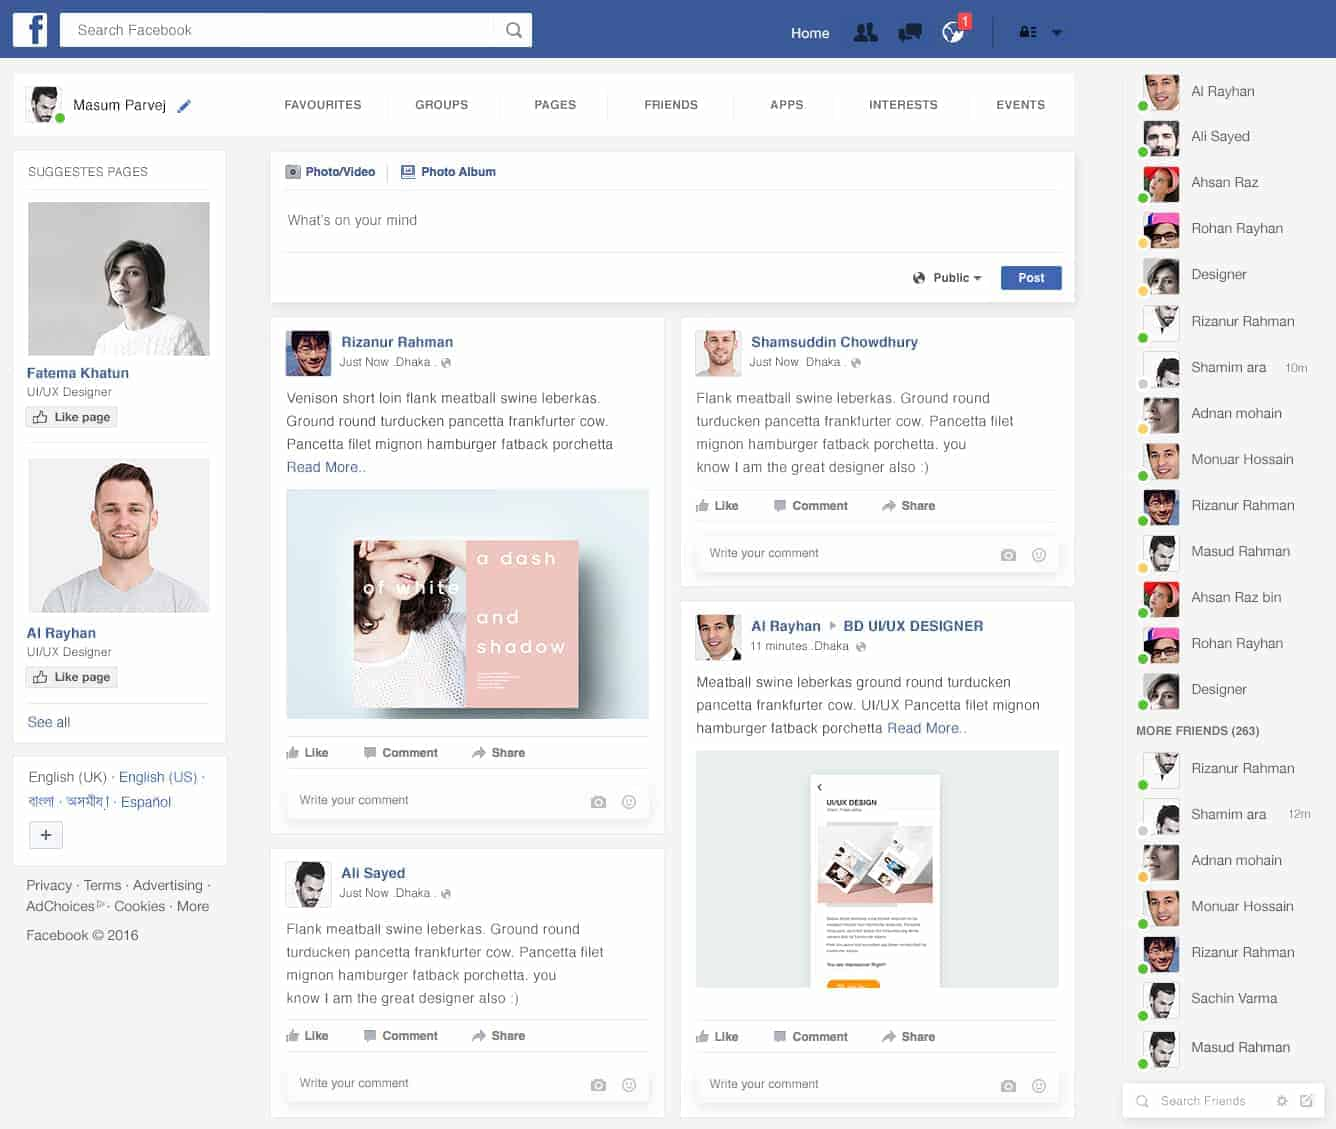 Facebook Home Page Redesign